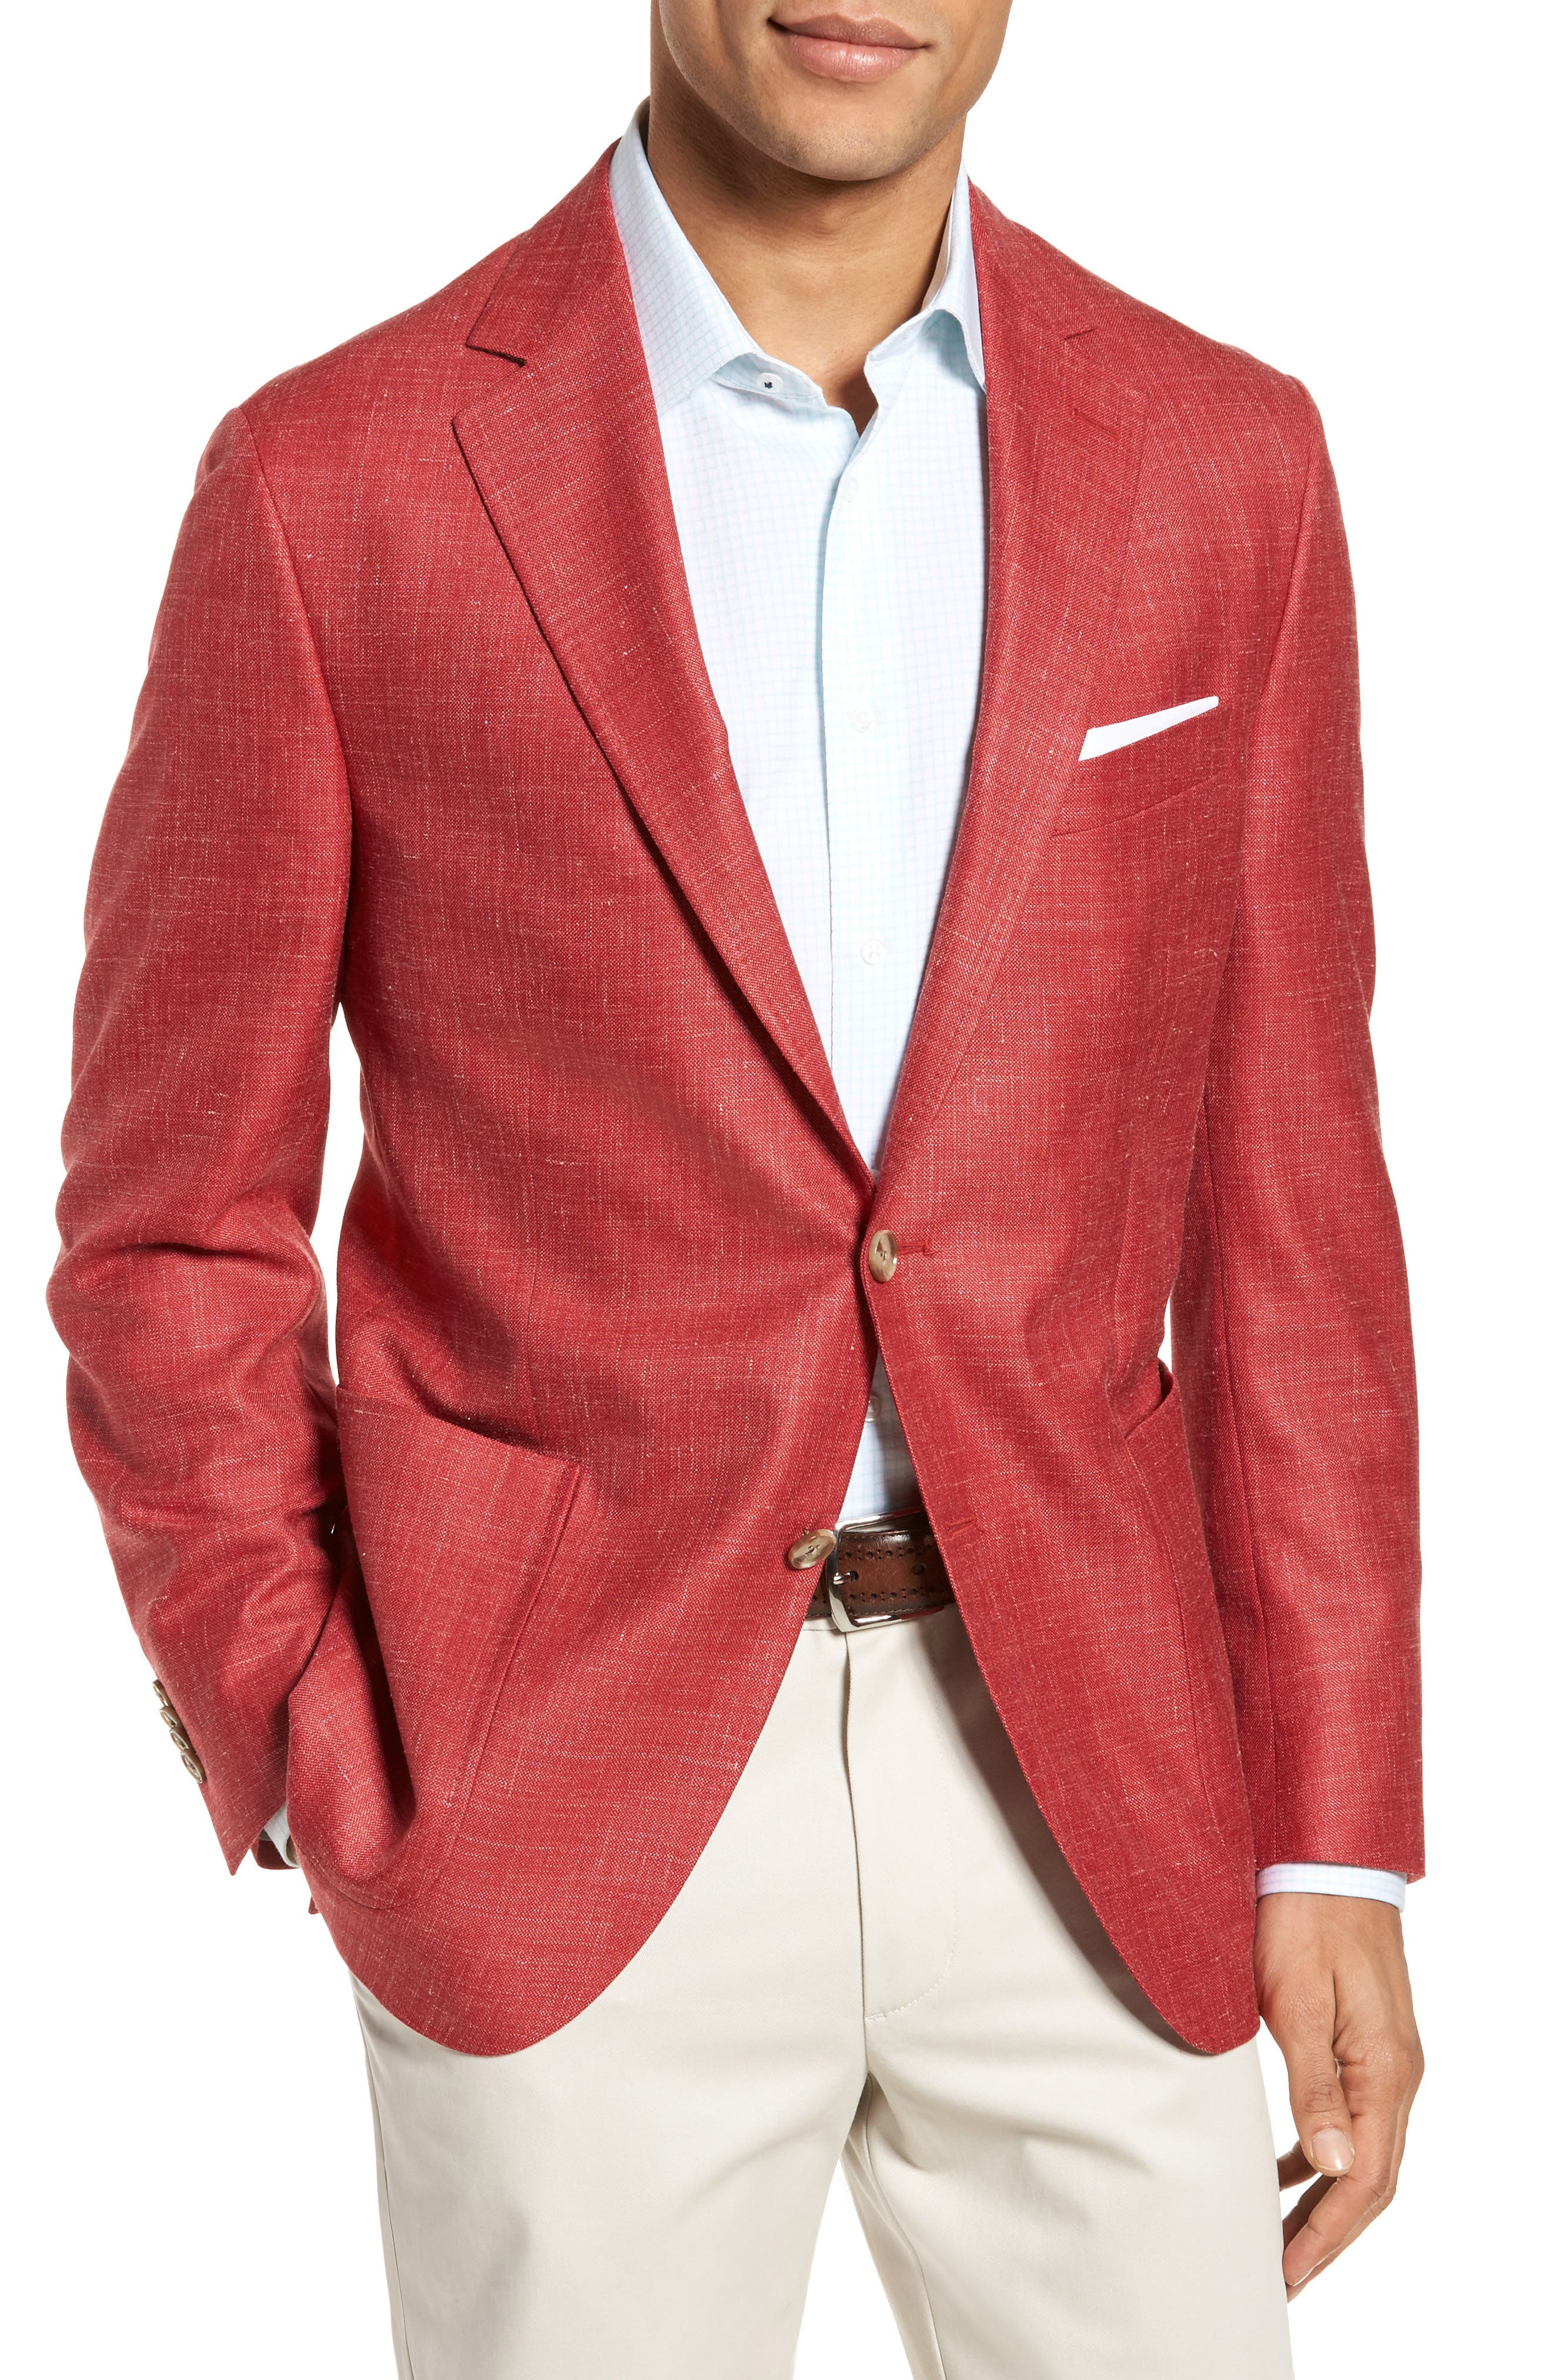 Classic Fit Wool Blend Blazer,                             Main thumbnail 1, color,                             Coral